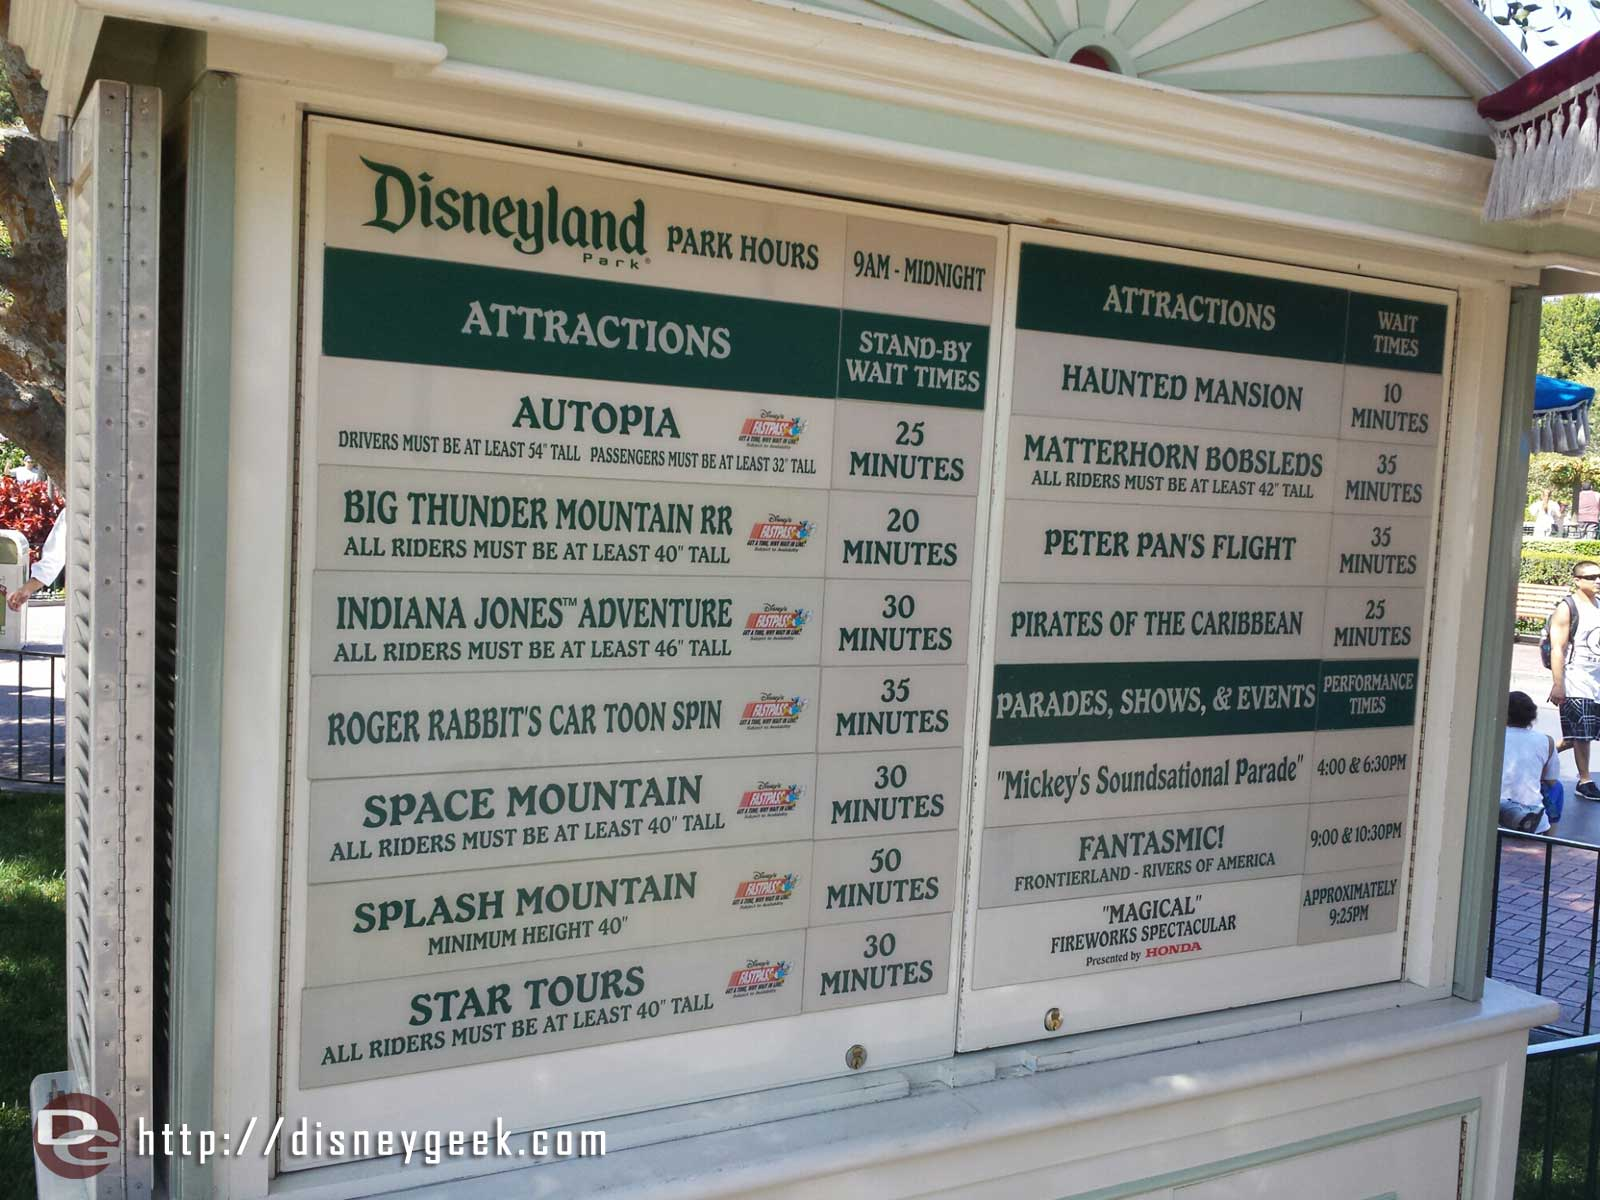 #Disneyland waits as of 2:51pm